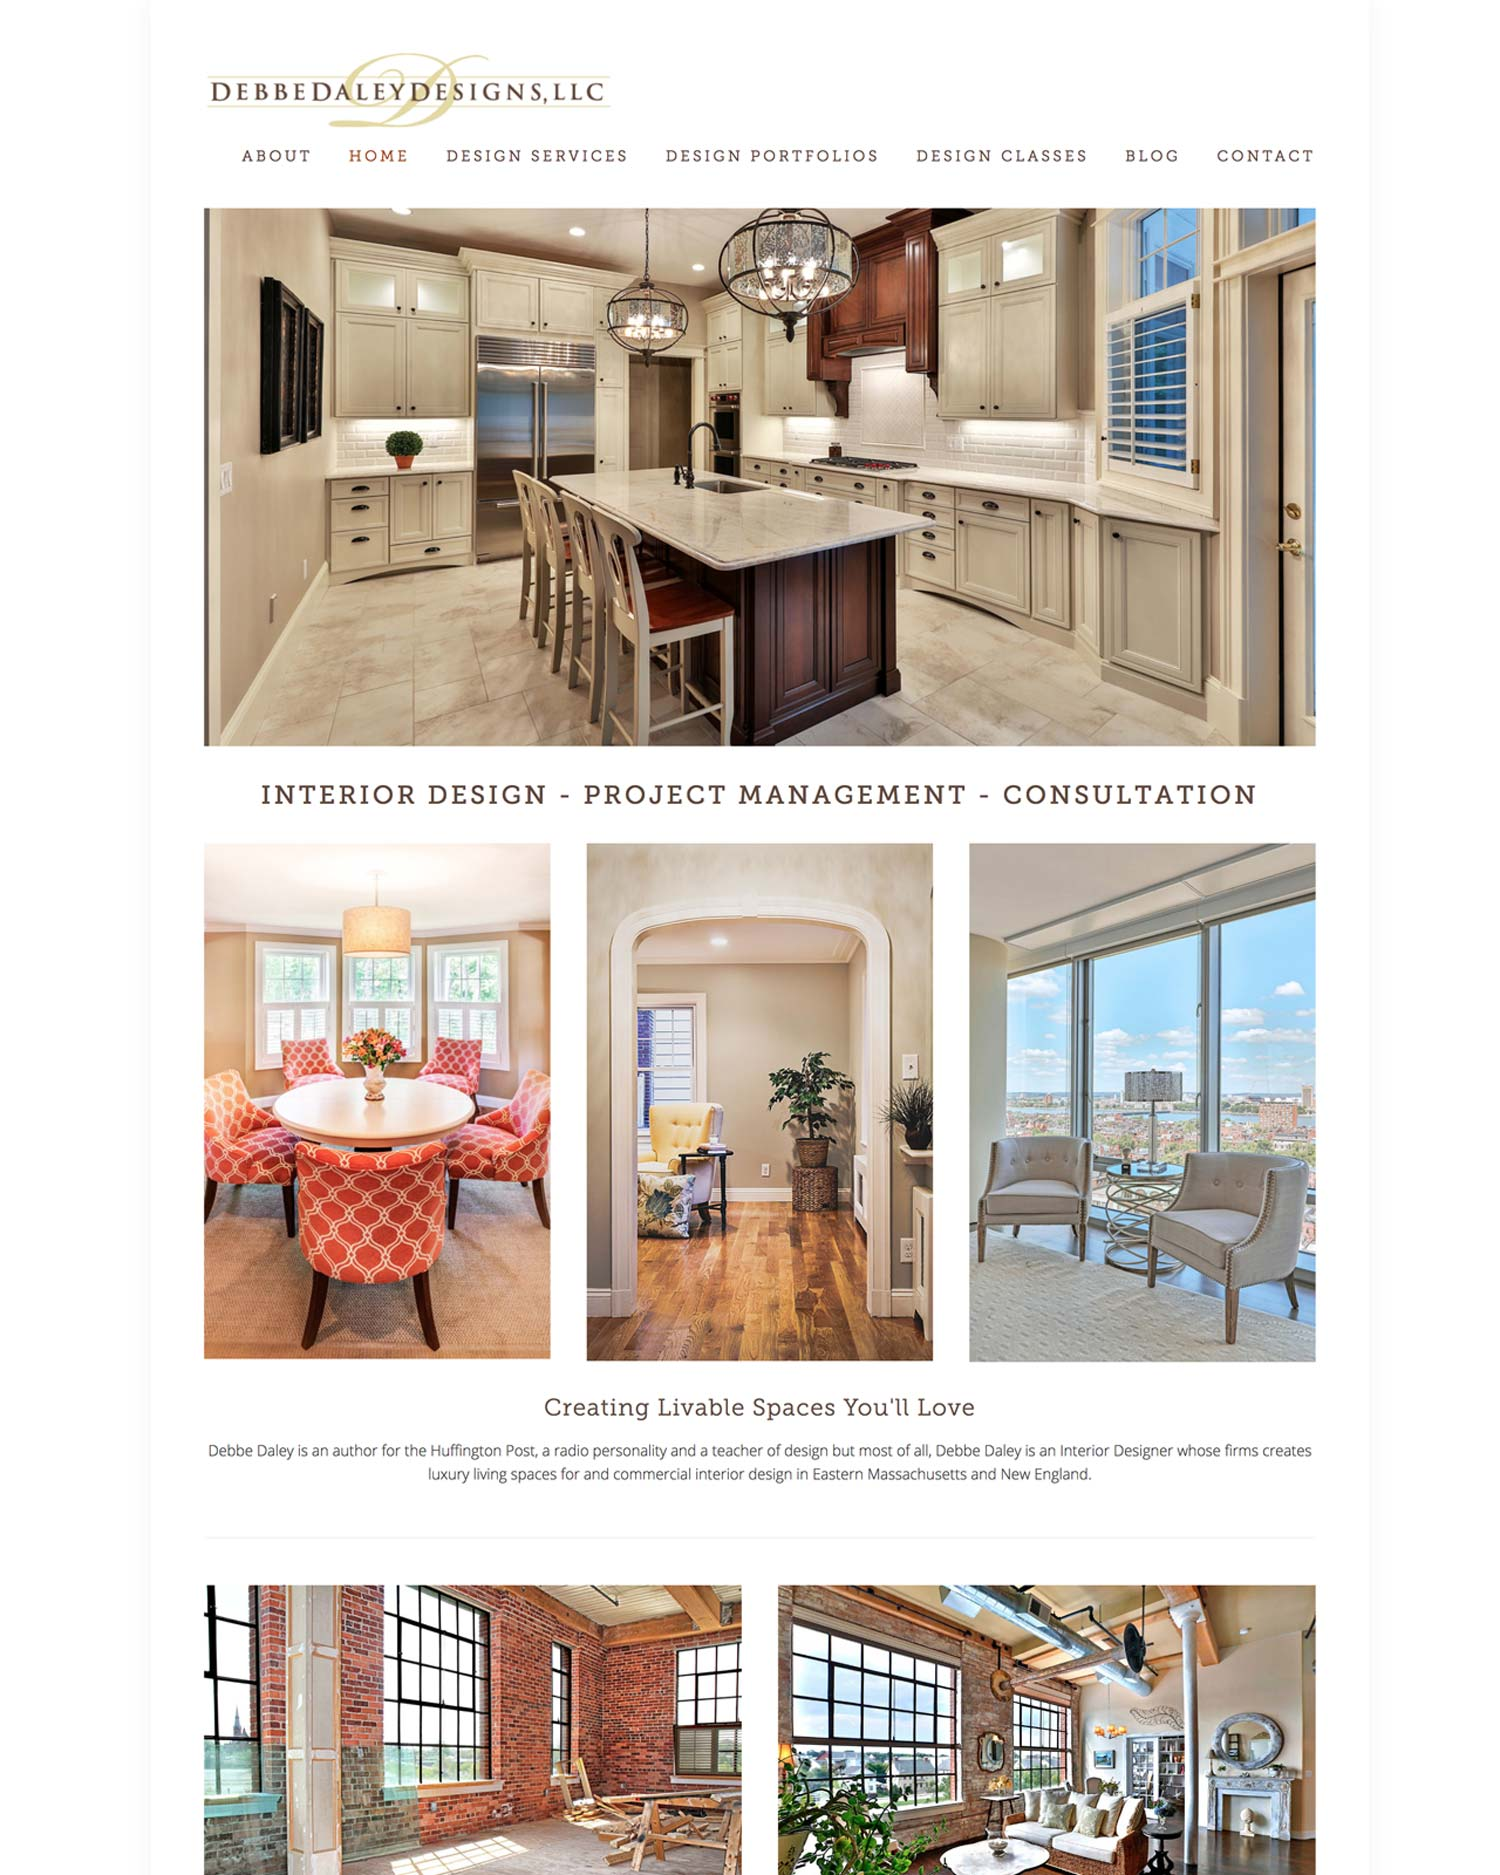 Debbe Daley Designs - A Residential and Commercial Interior Designer and Design School